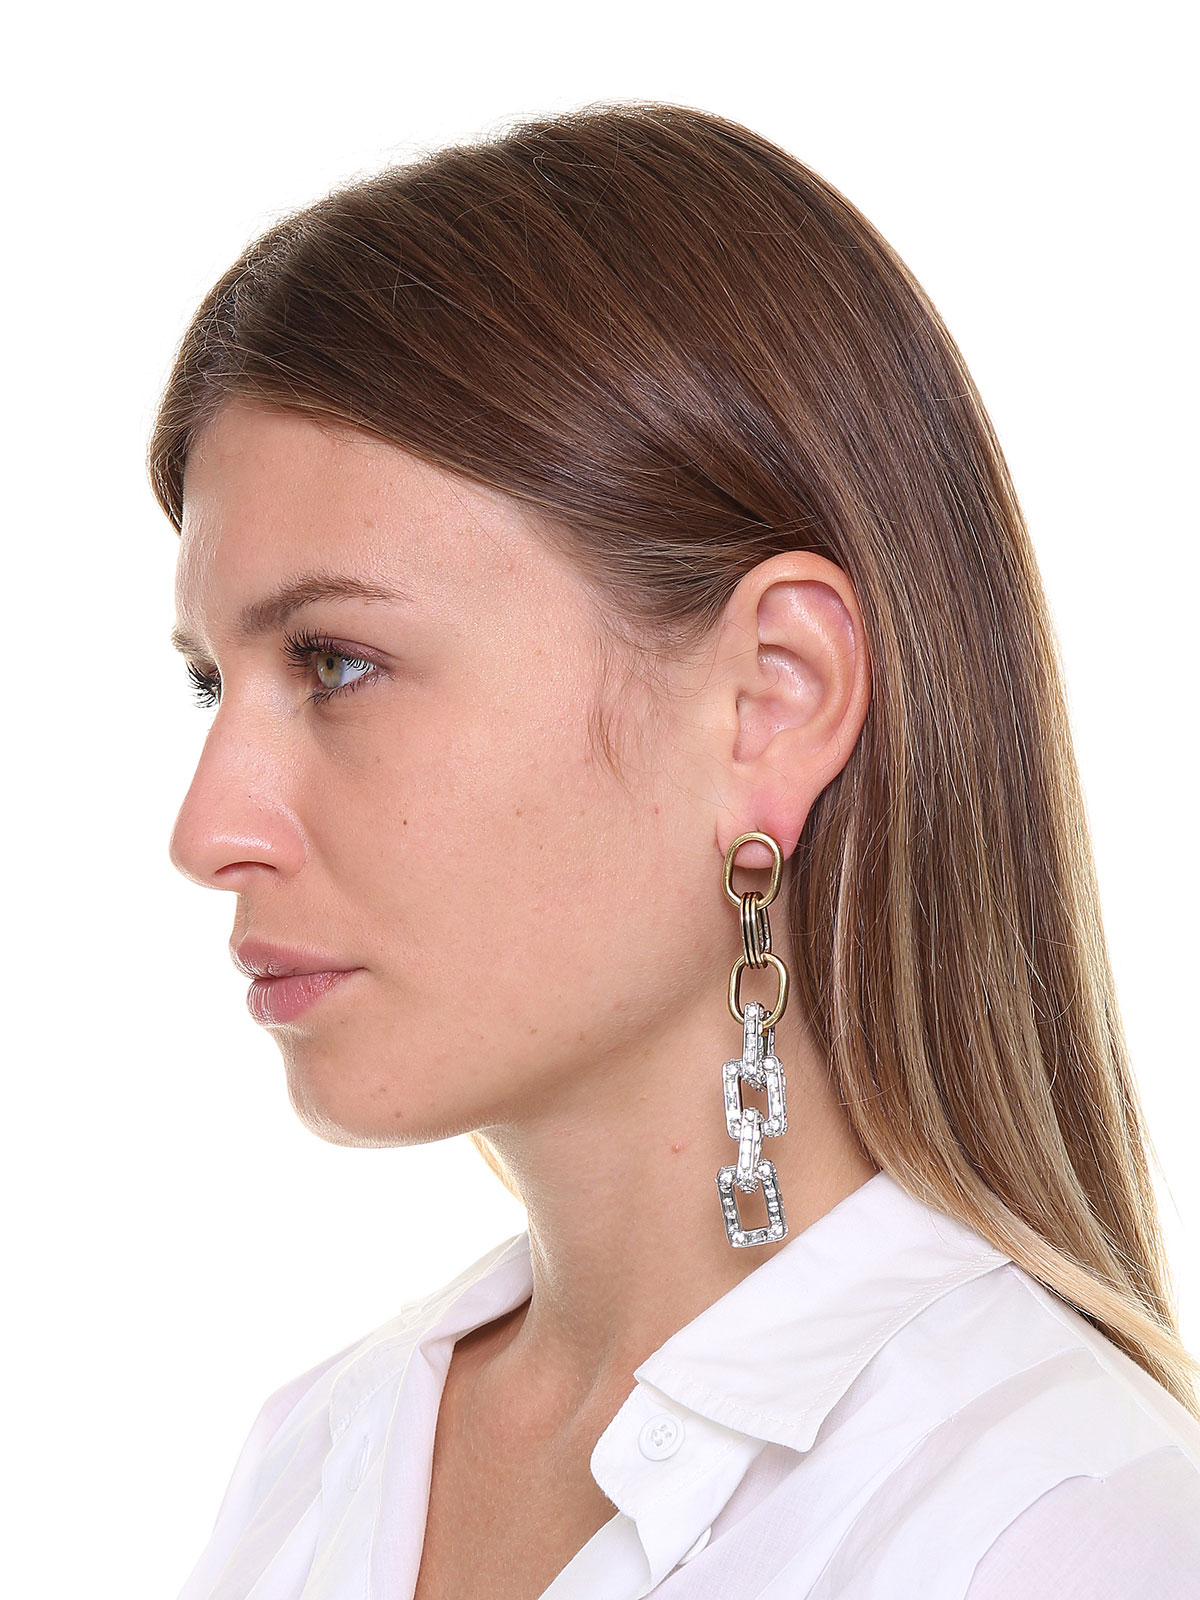 Pendent earrings with crystals